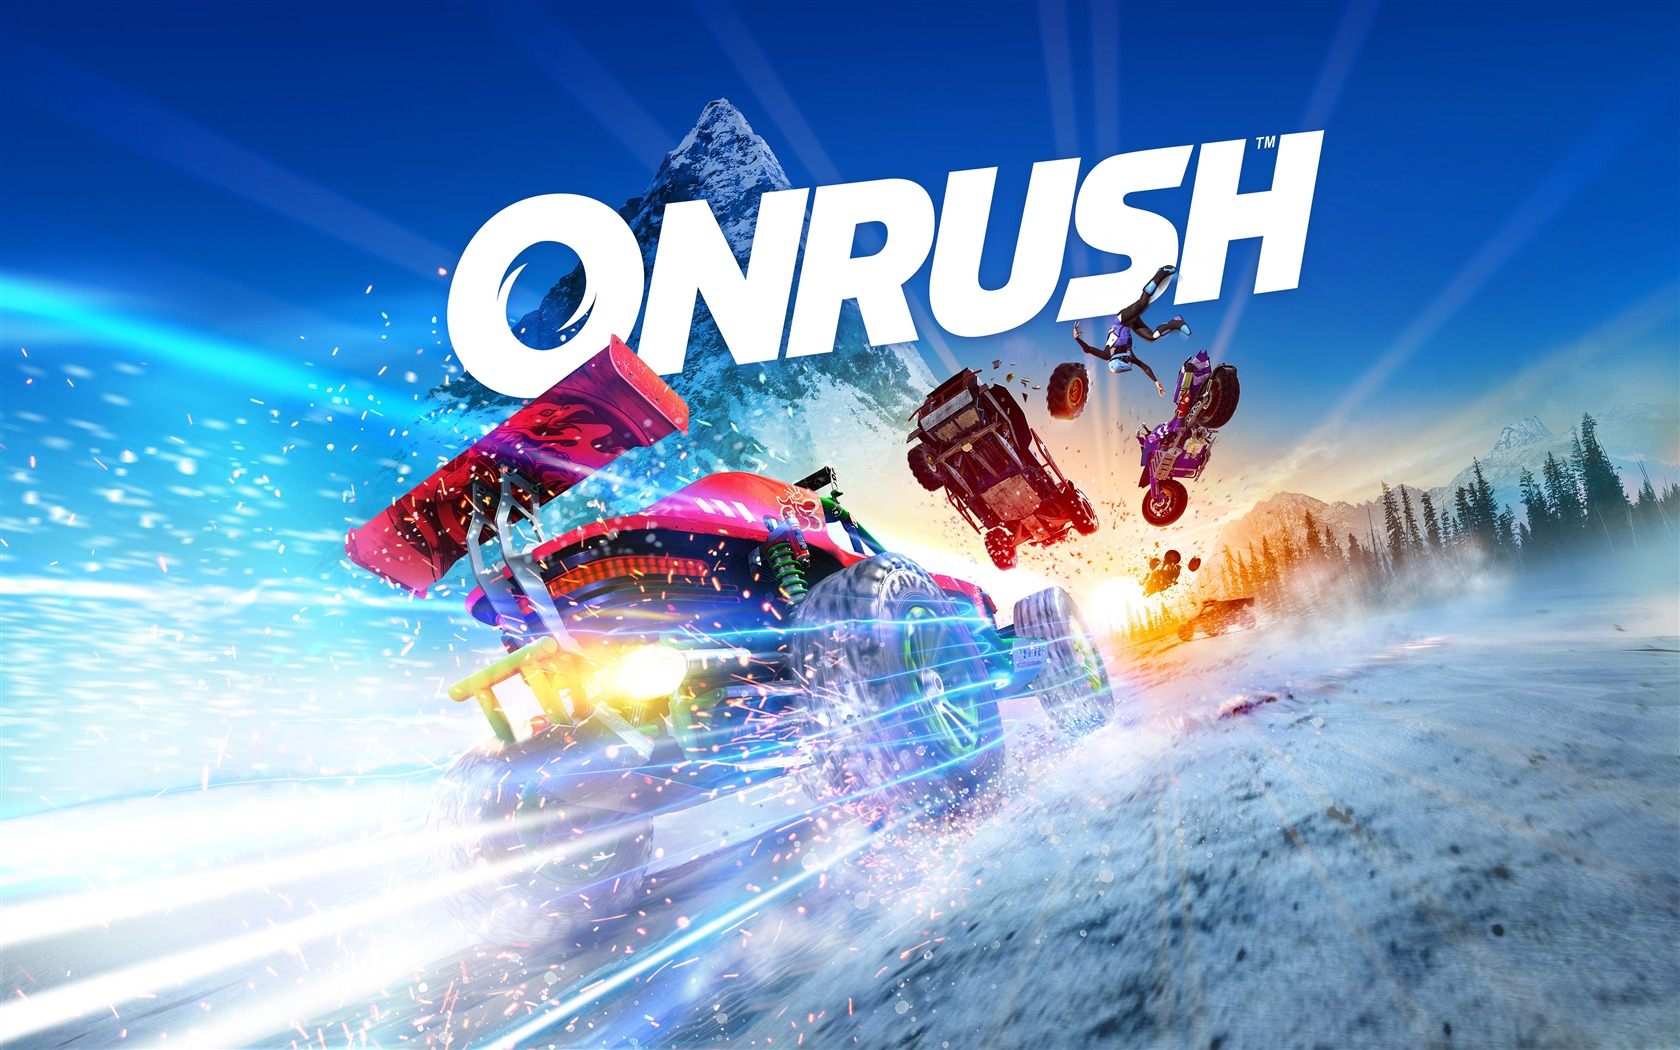 Onrush 2018 Video Game 4K HD Poster - 1680x1050 wallpaper download